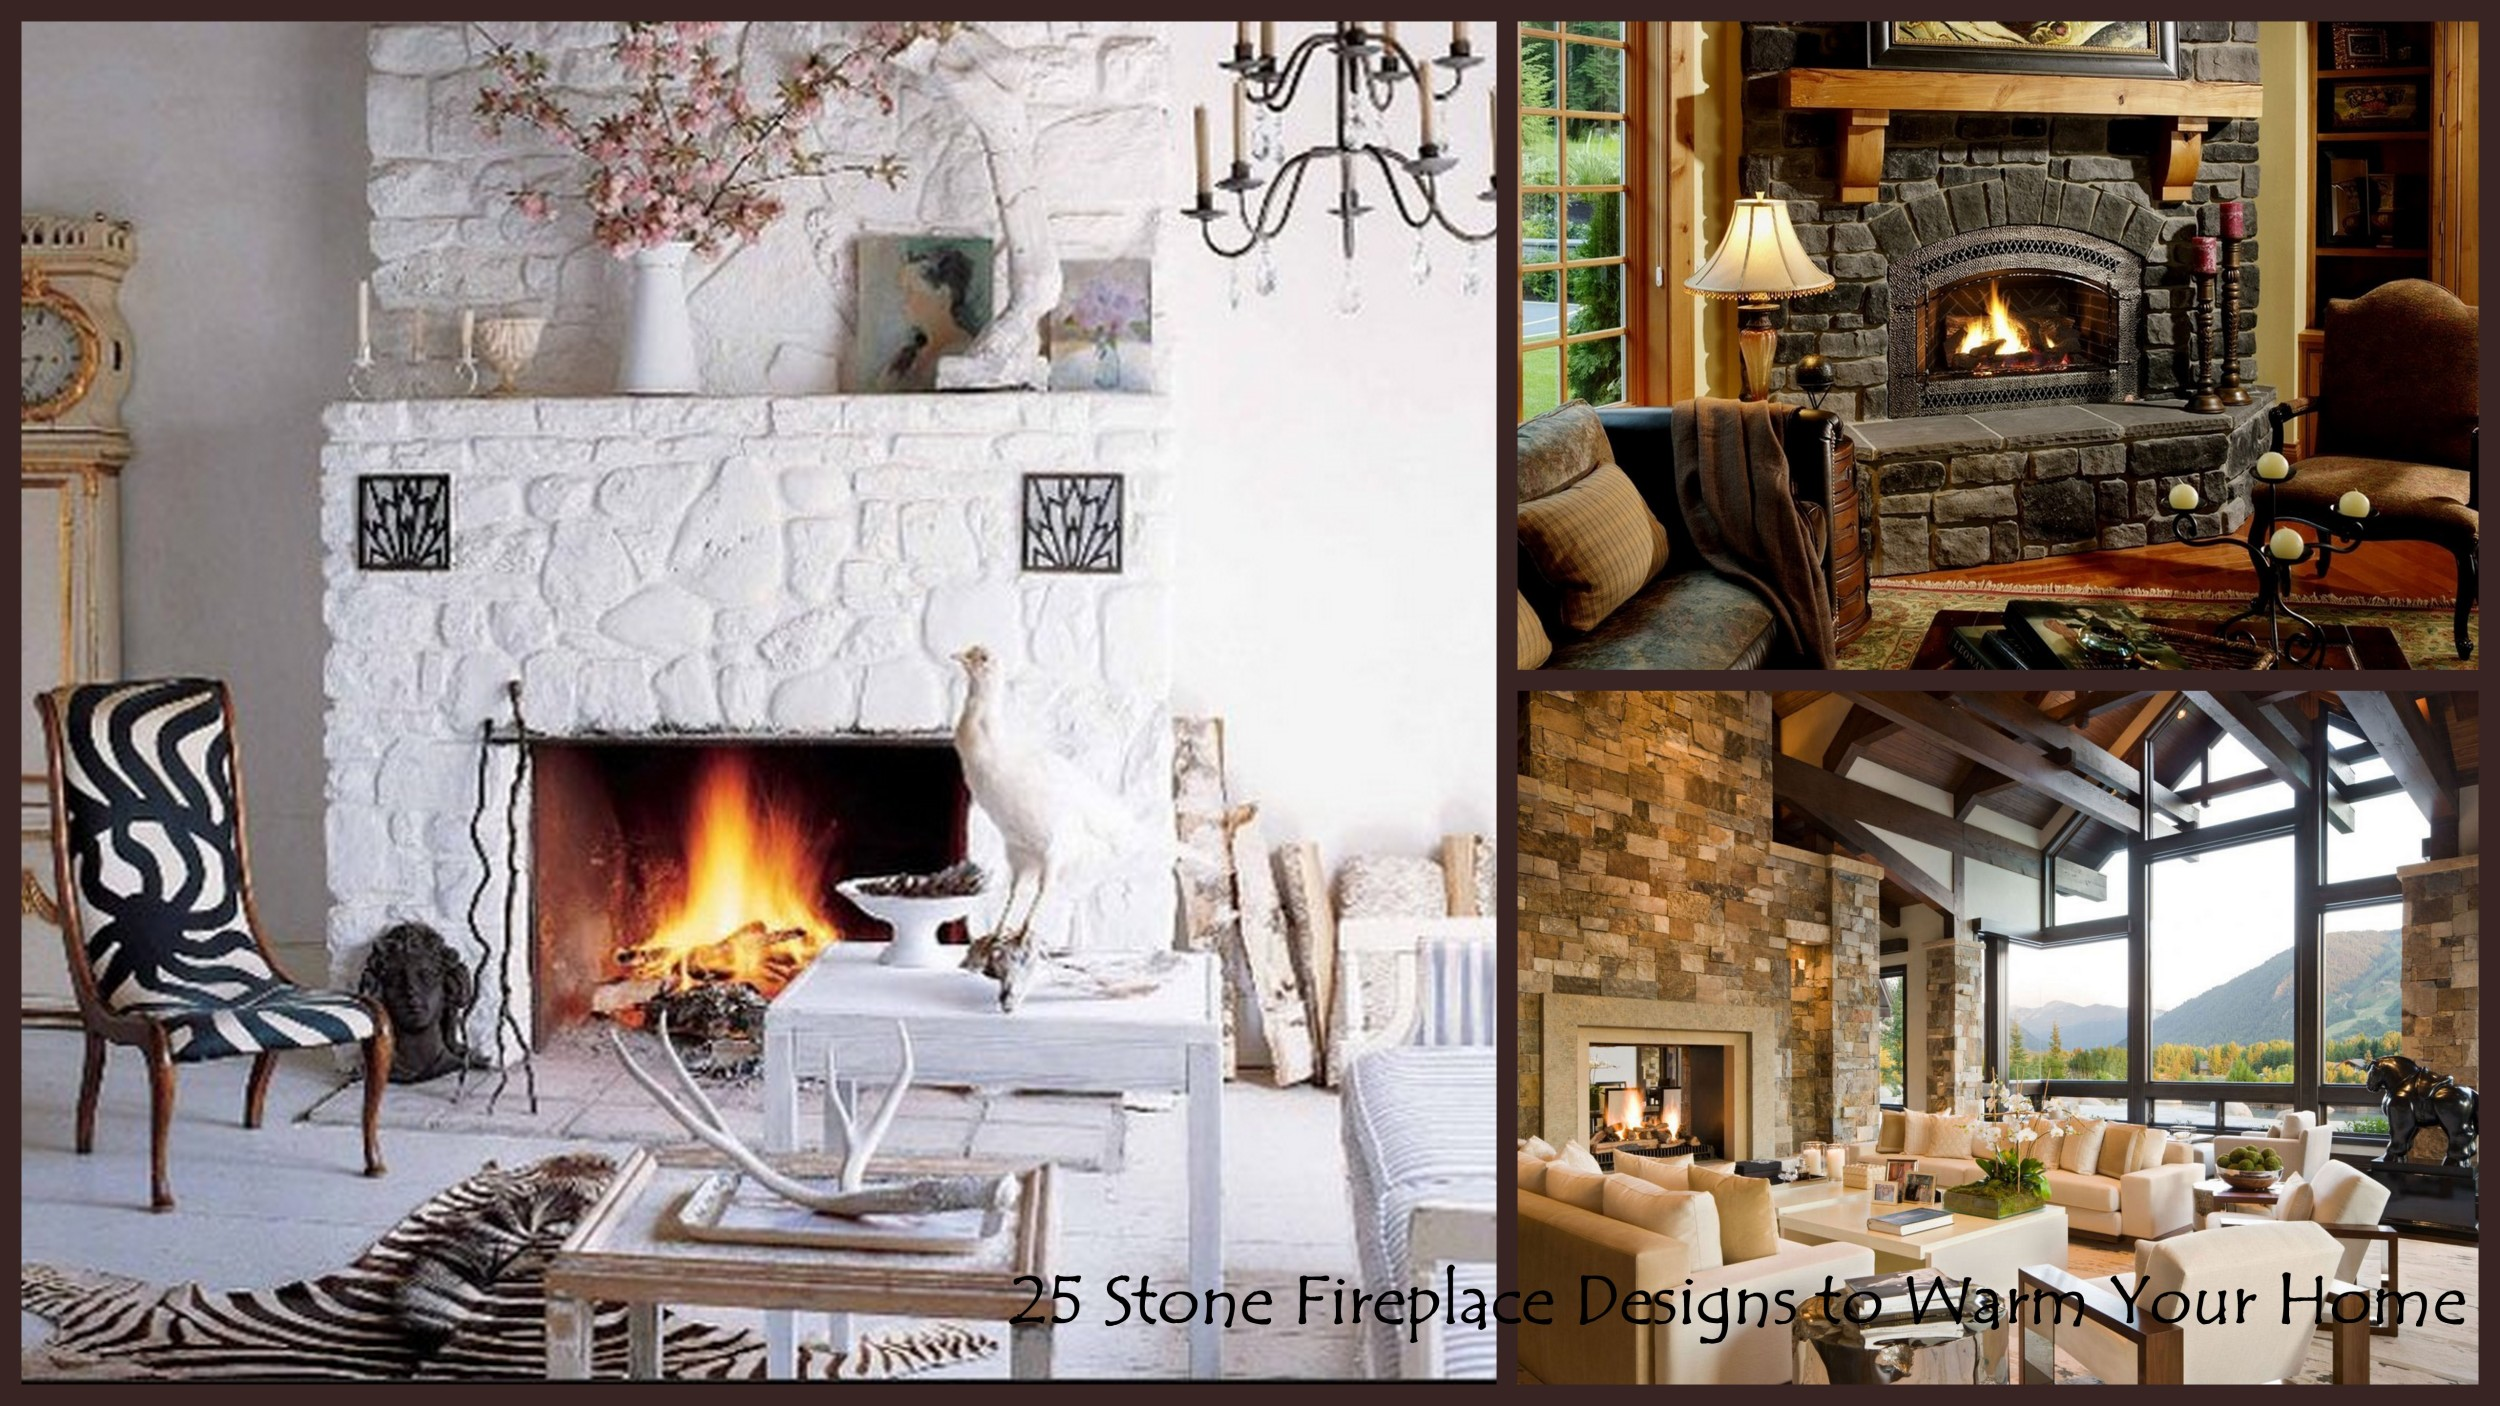 Fire Stones For Fireplace 25 Interior Stone Fireplace Designs